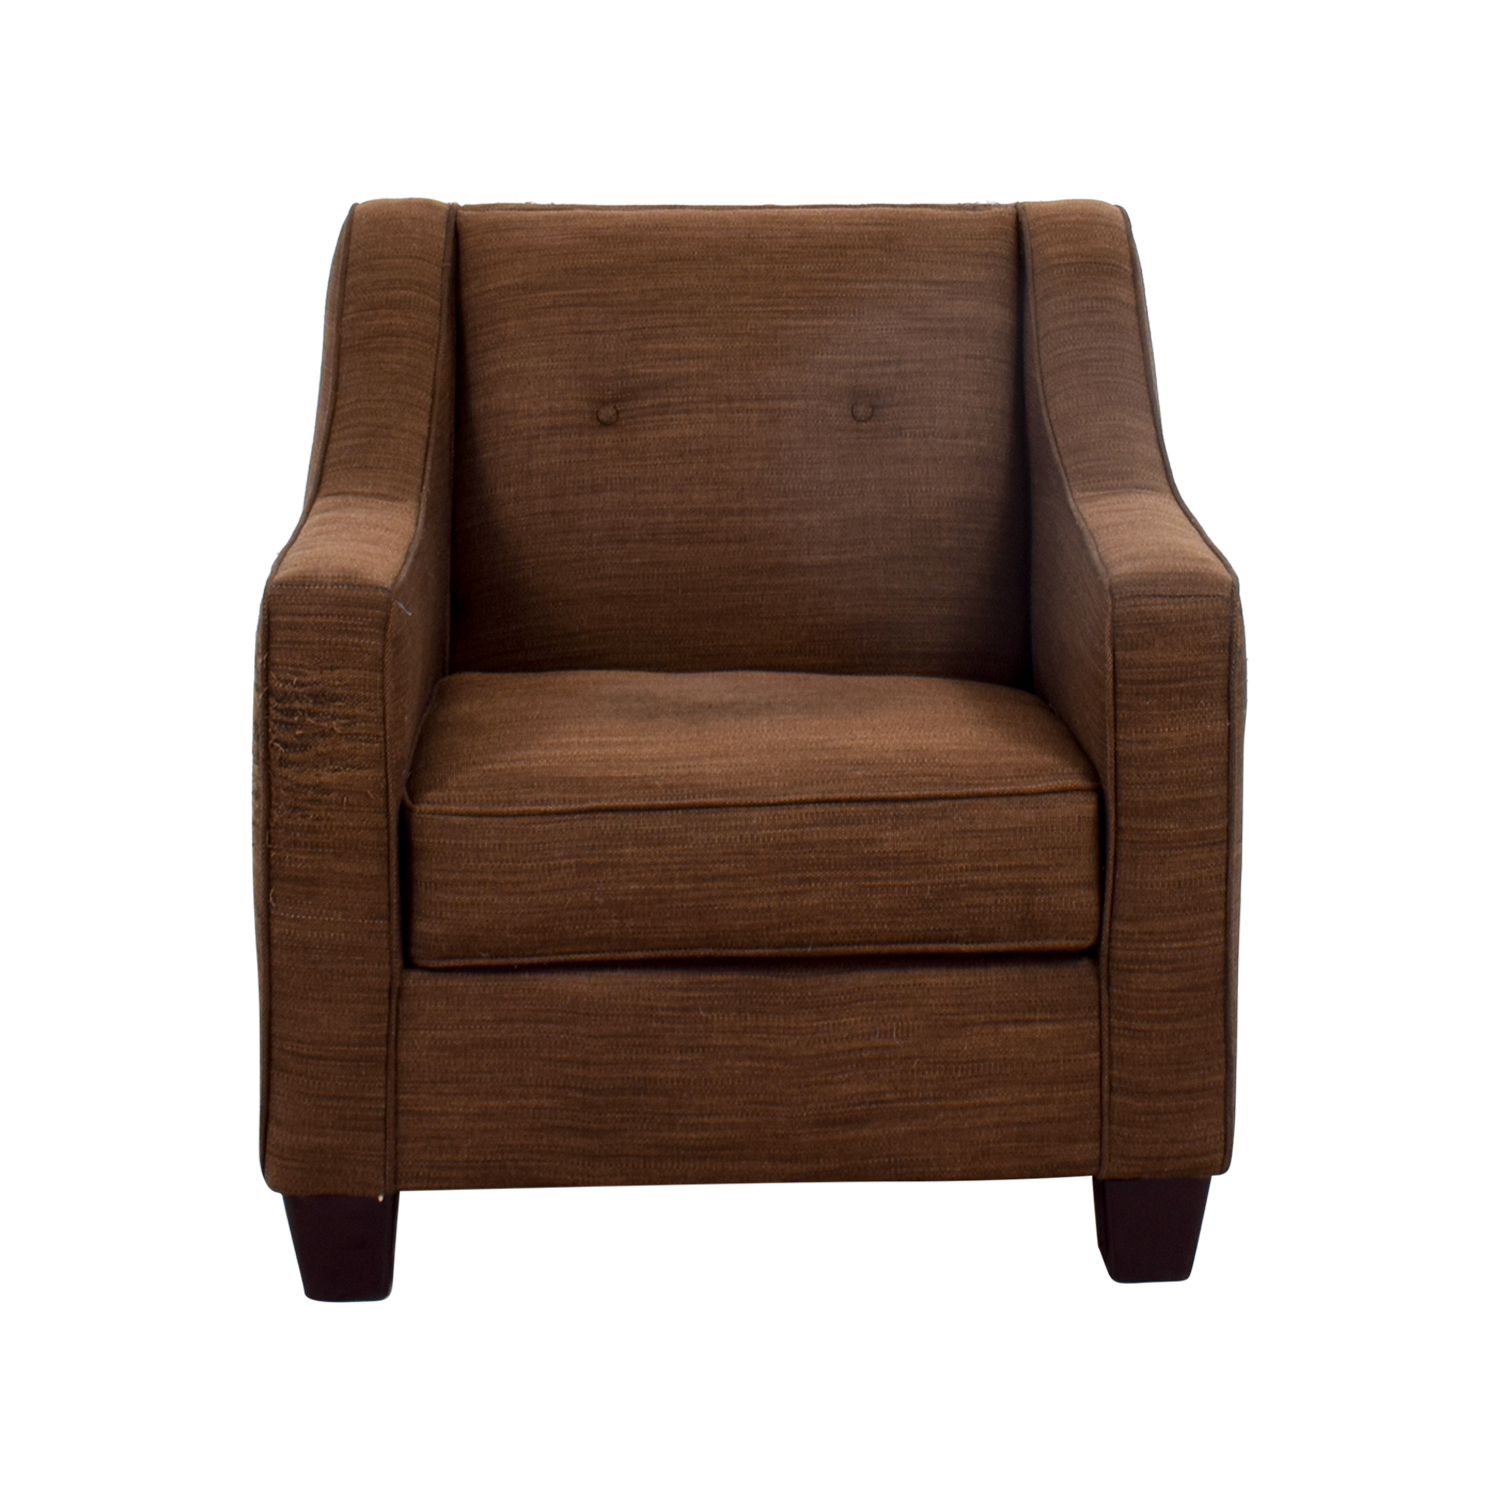 shop Large Brown Chair online